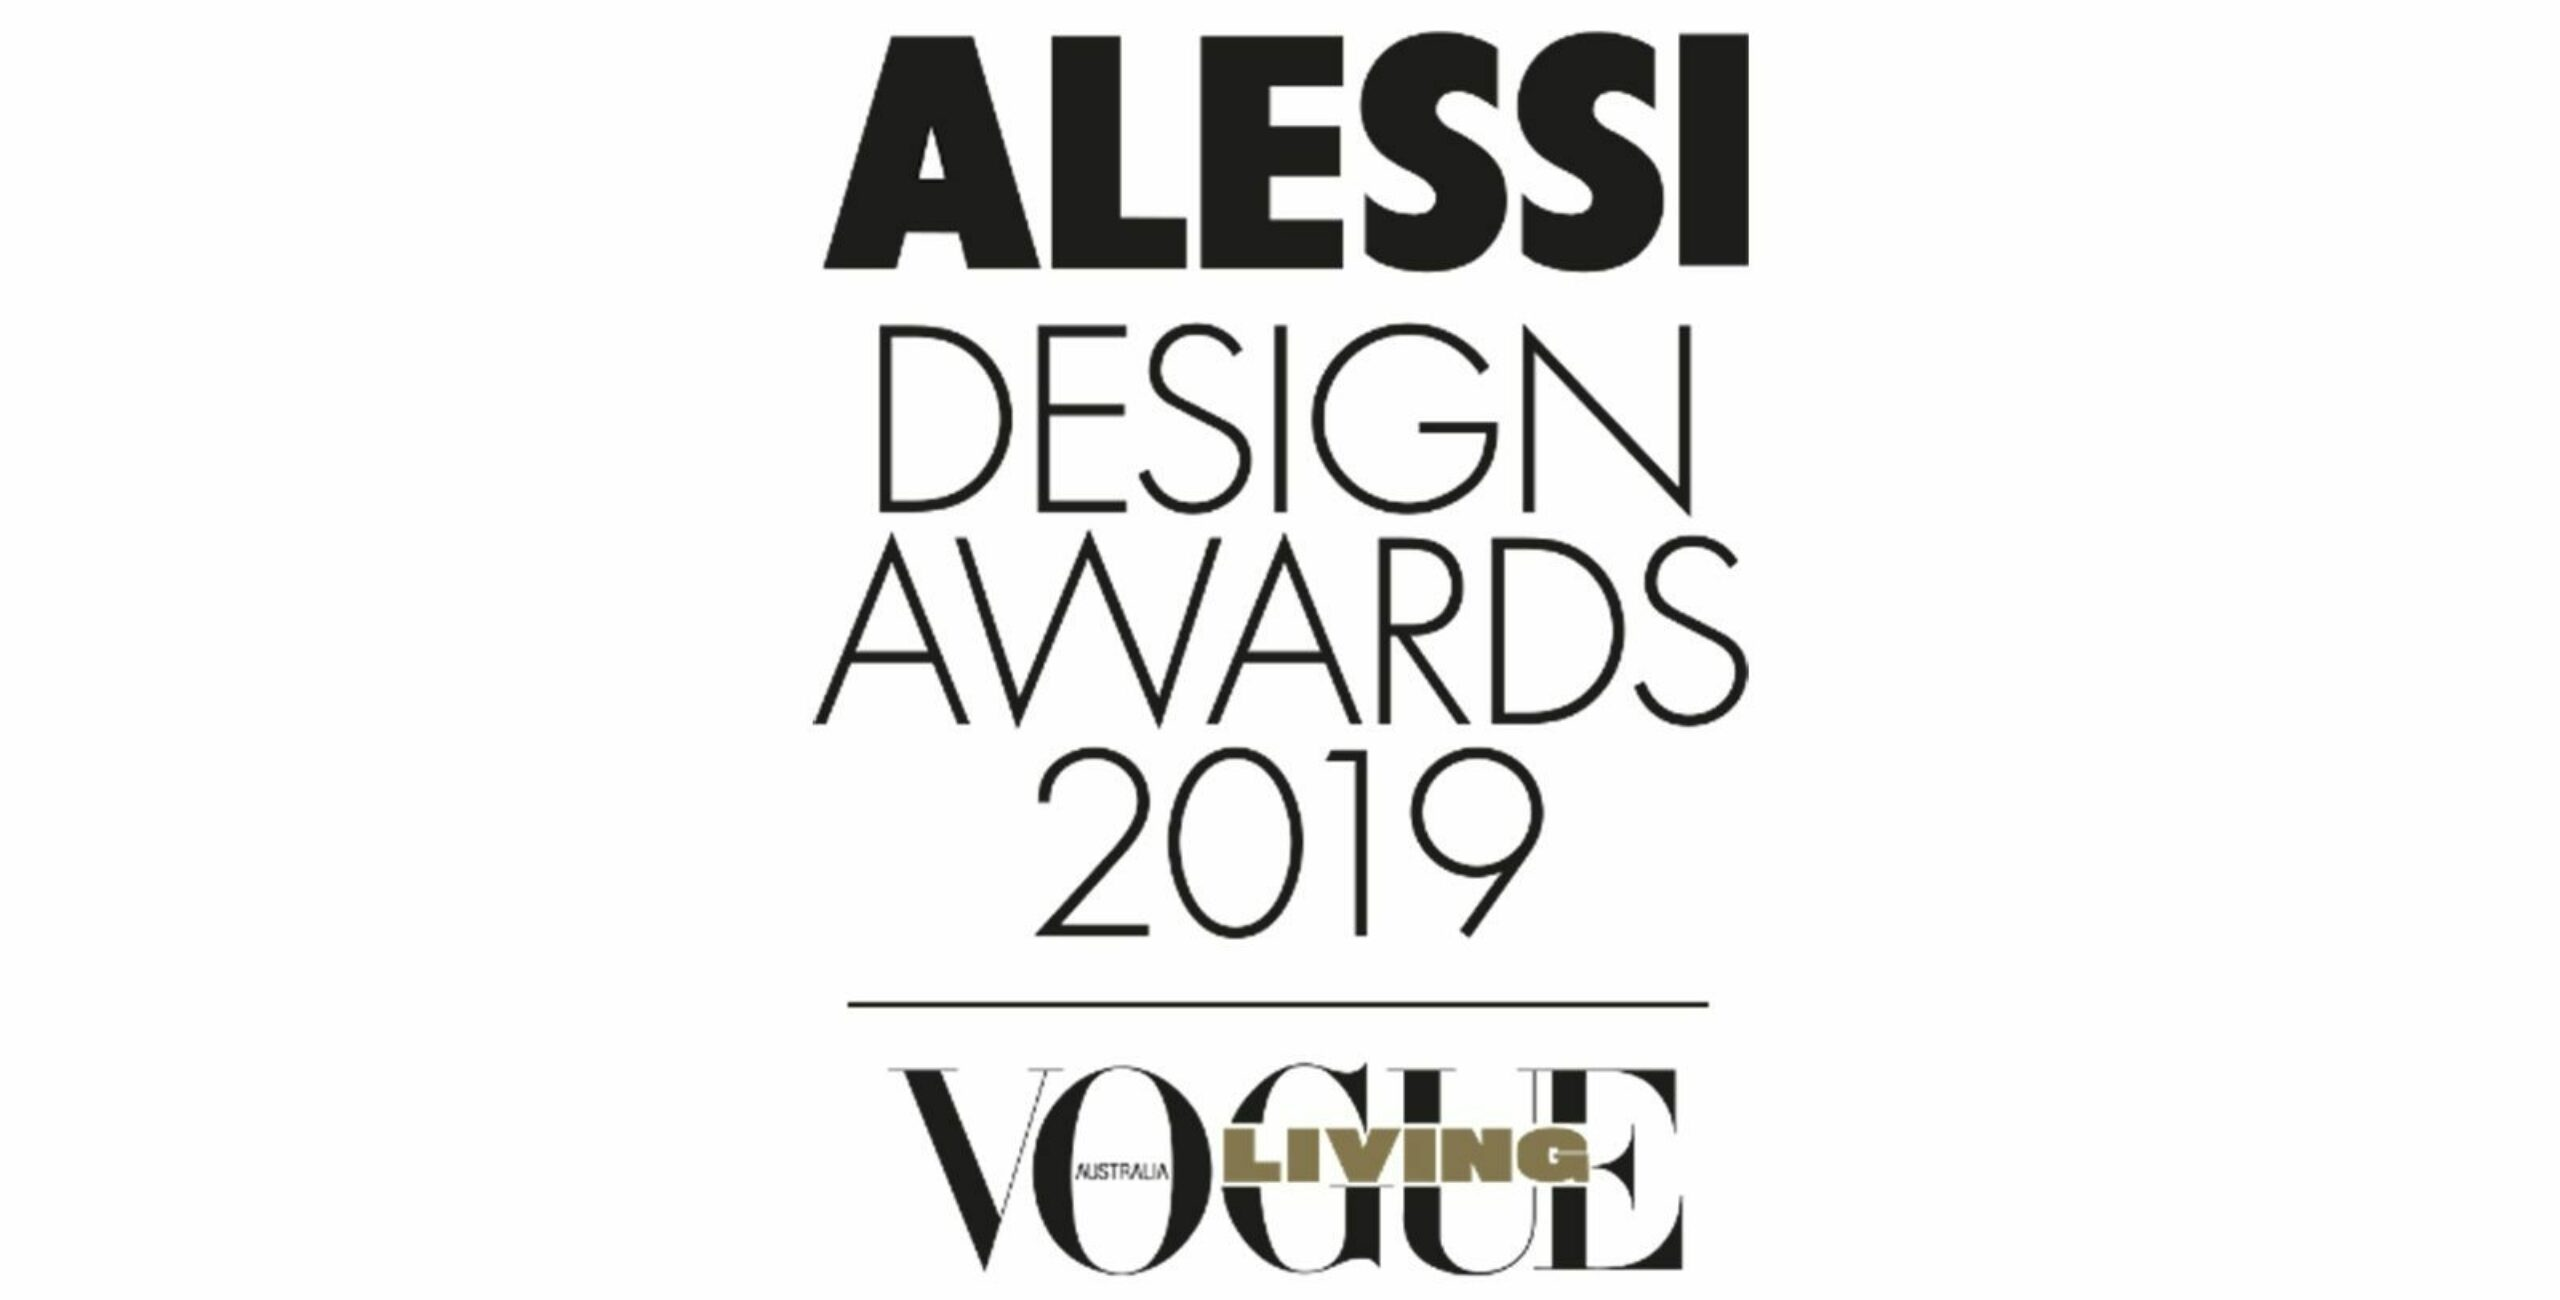 AU BLOG ALESSI DESIGN AWARDS 2019 190306 025940